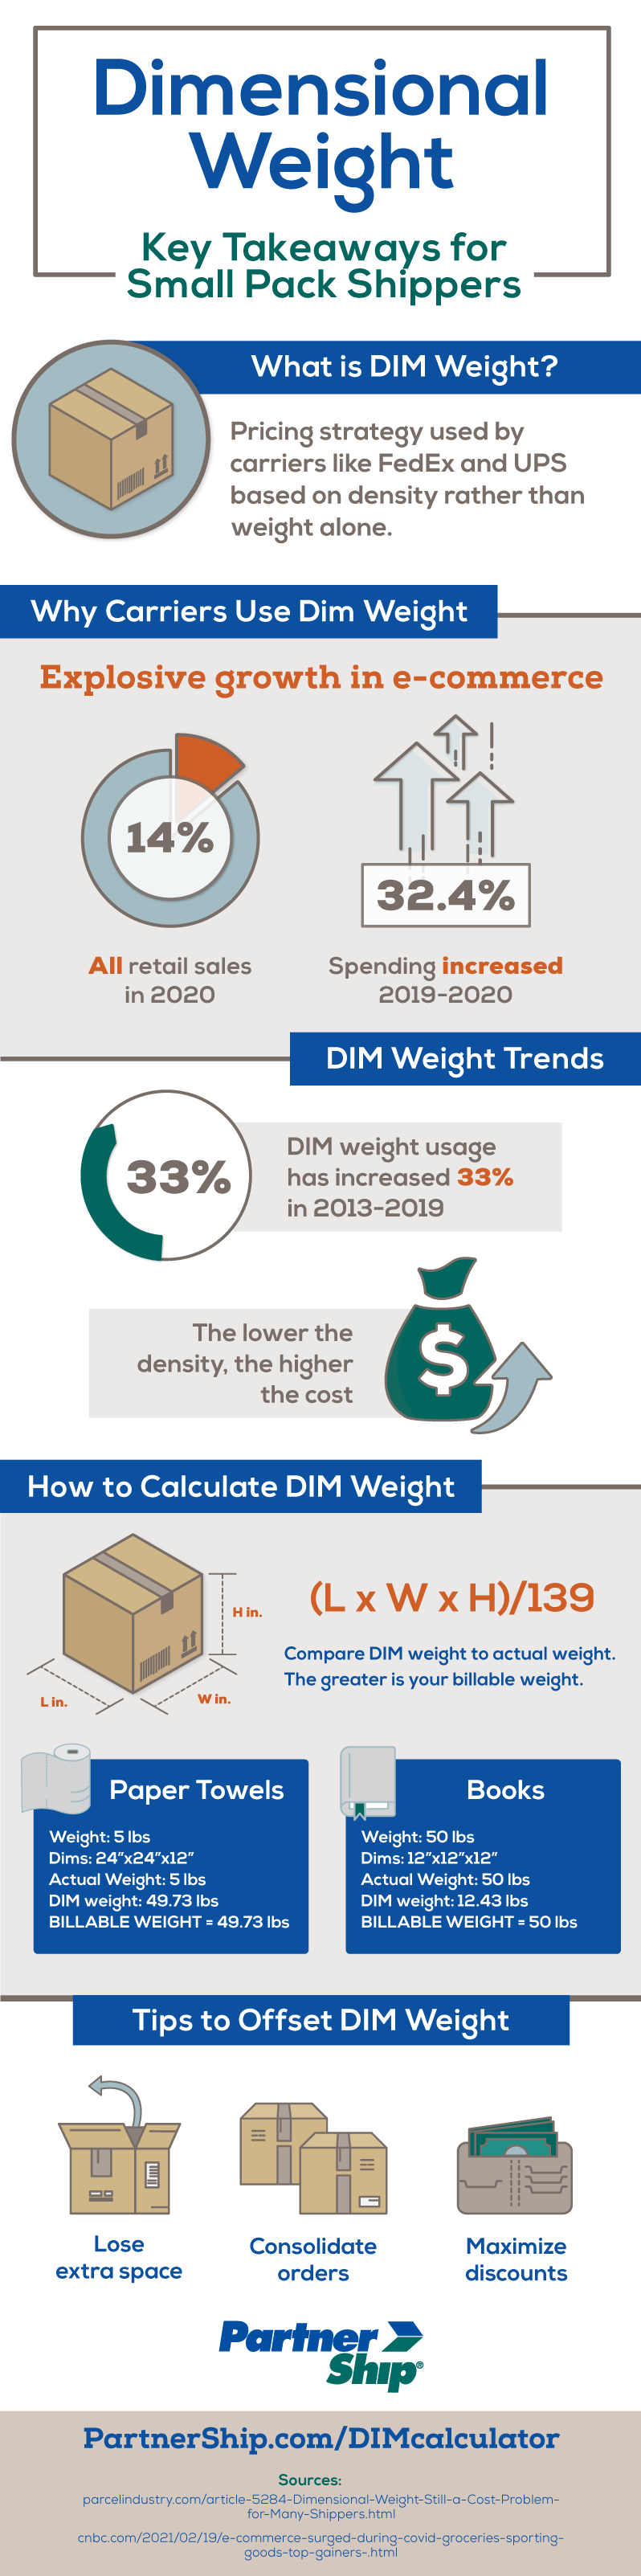 DIM Weight Infographic